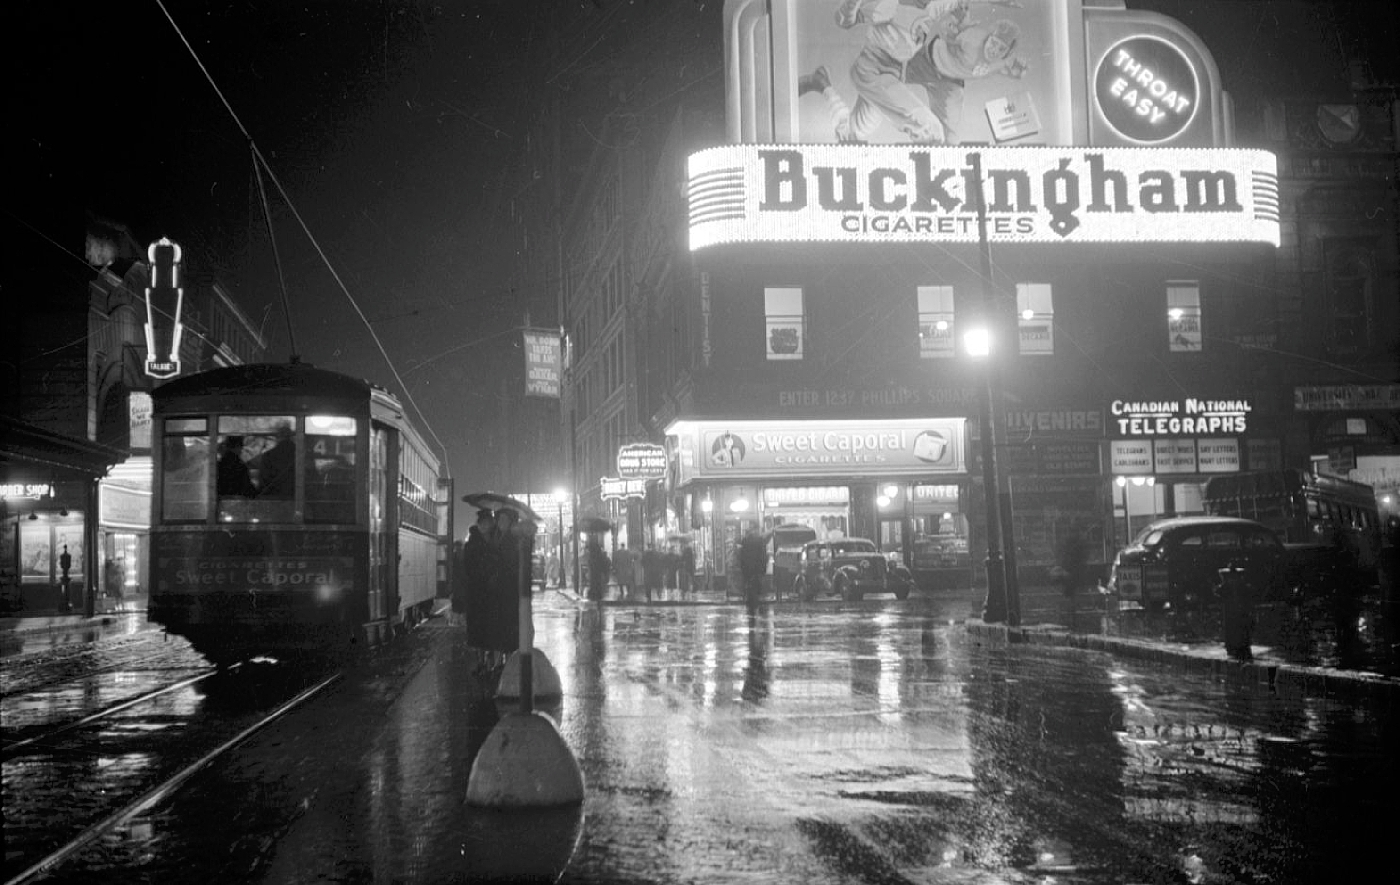 Nightscape. A streetcar passes a building with a neon sign advertising Buckingham cigarettes.